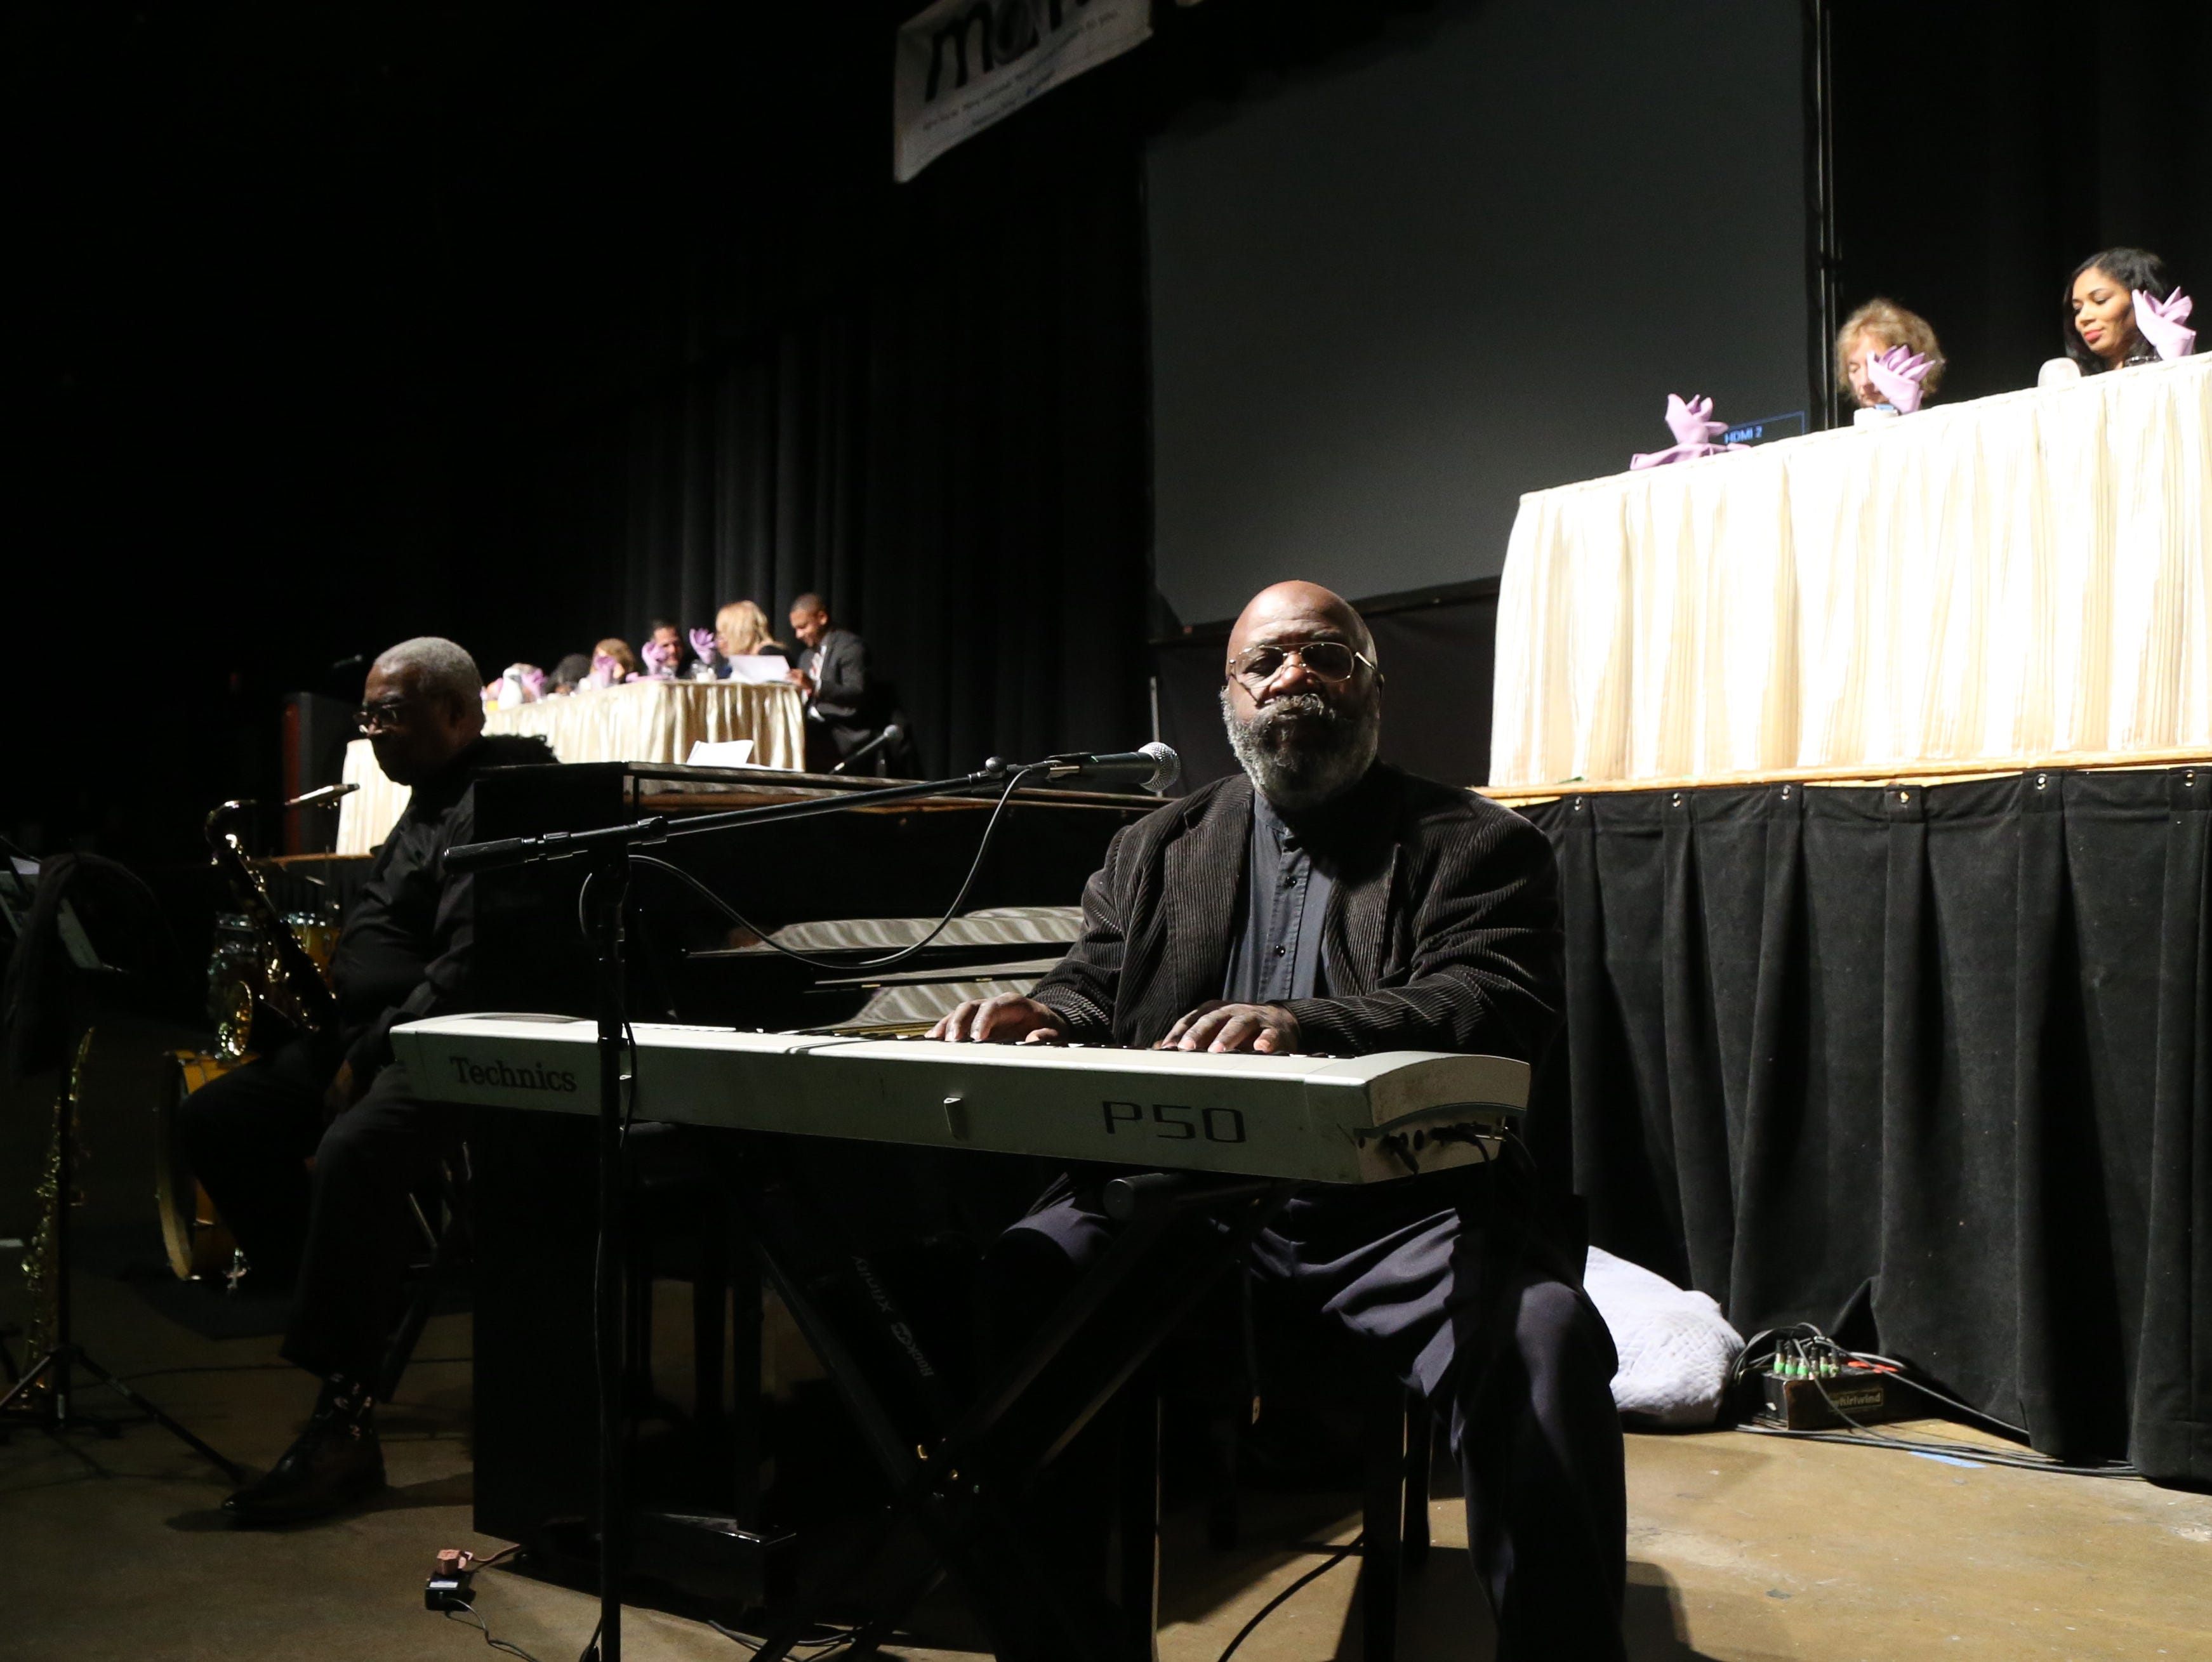 Rayford Watkins & Spirit of Unity Musicians provide music for the Martin Luther King Jr. Breakfast in the City of Poughkeepsie on January 25, 2019.